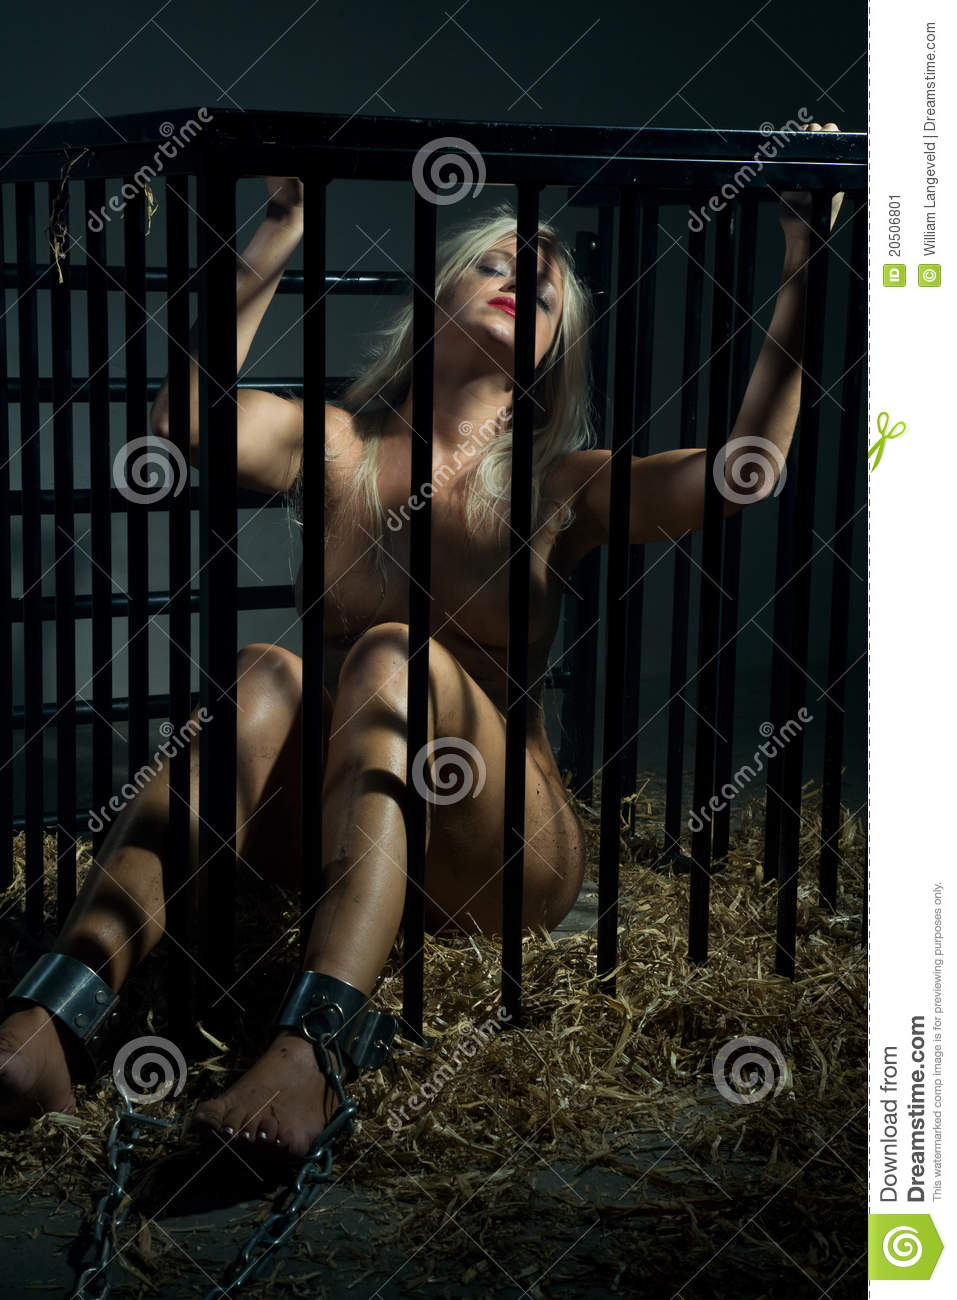 bondage art with beautiful nude woman in cage stock image - image of